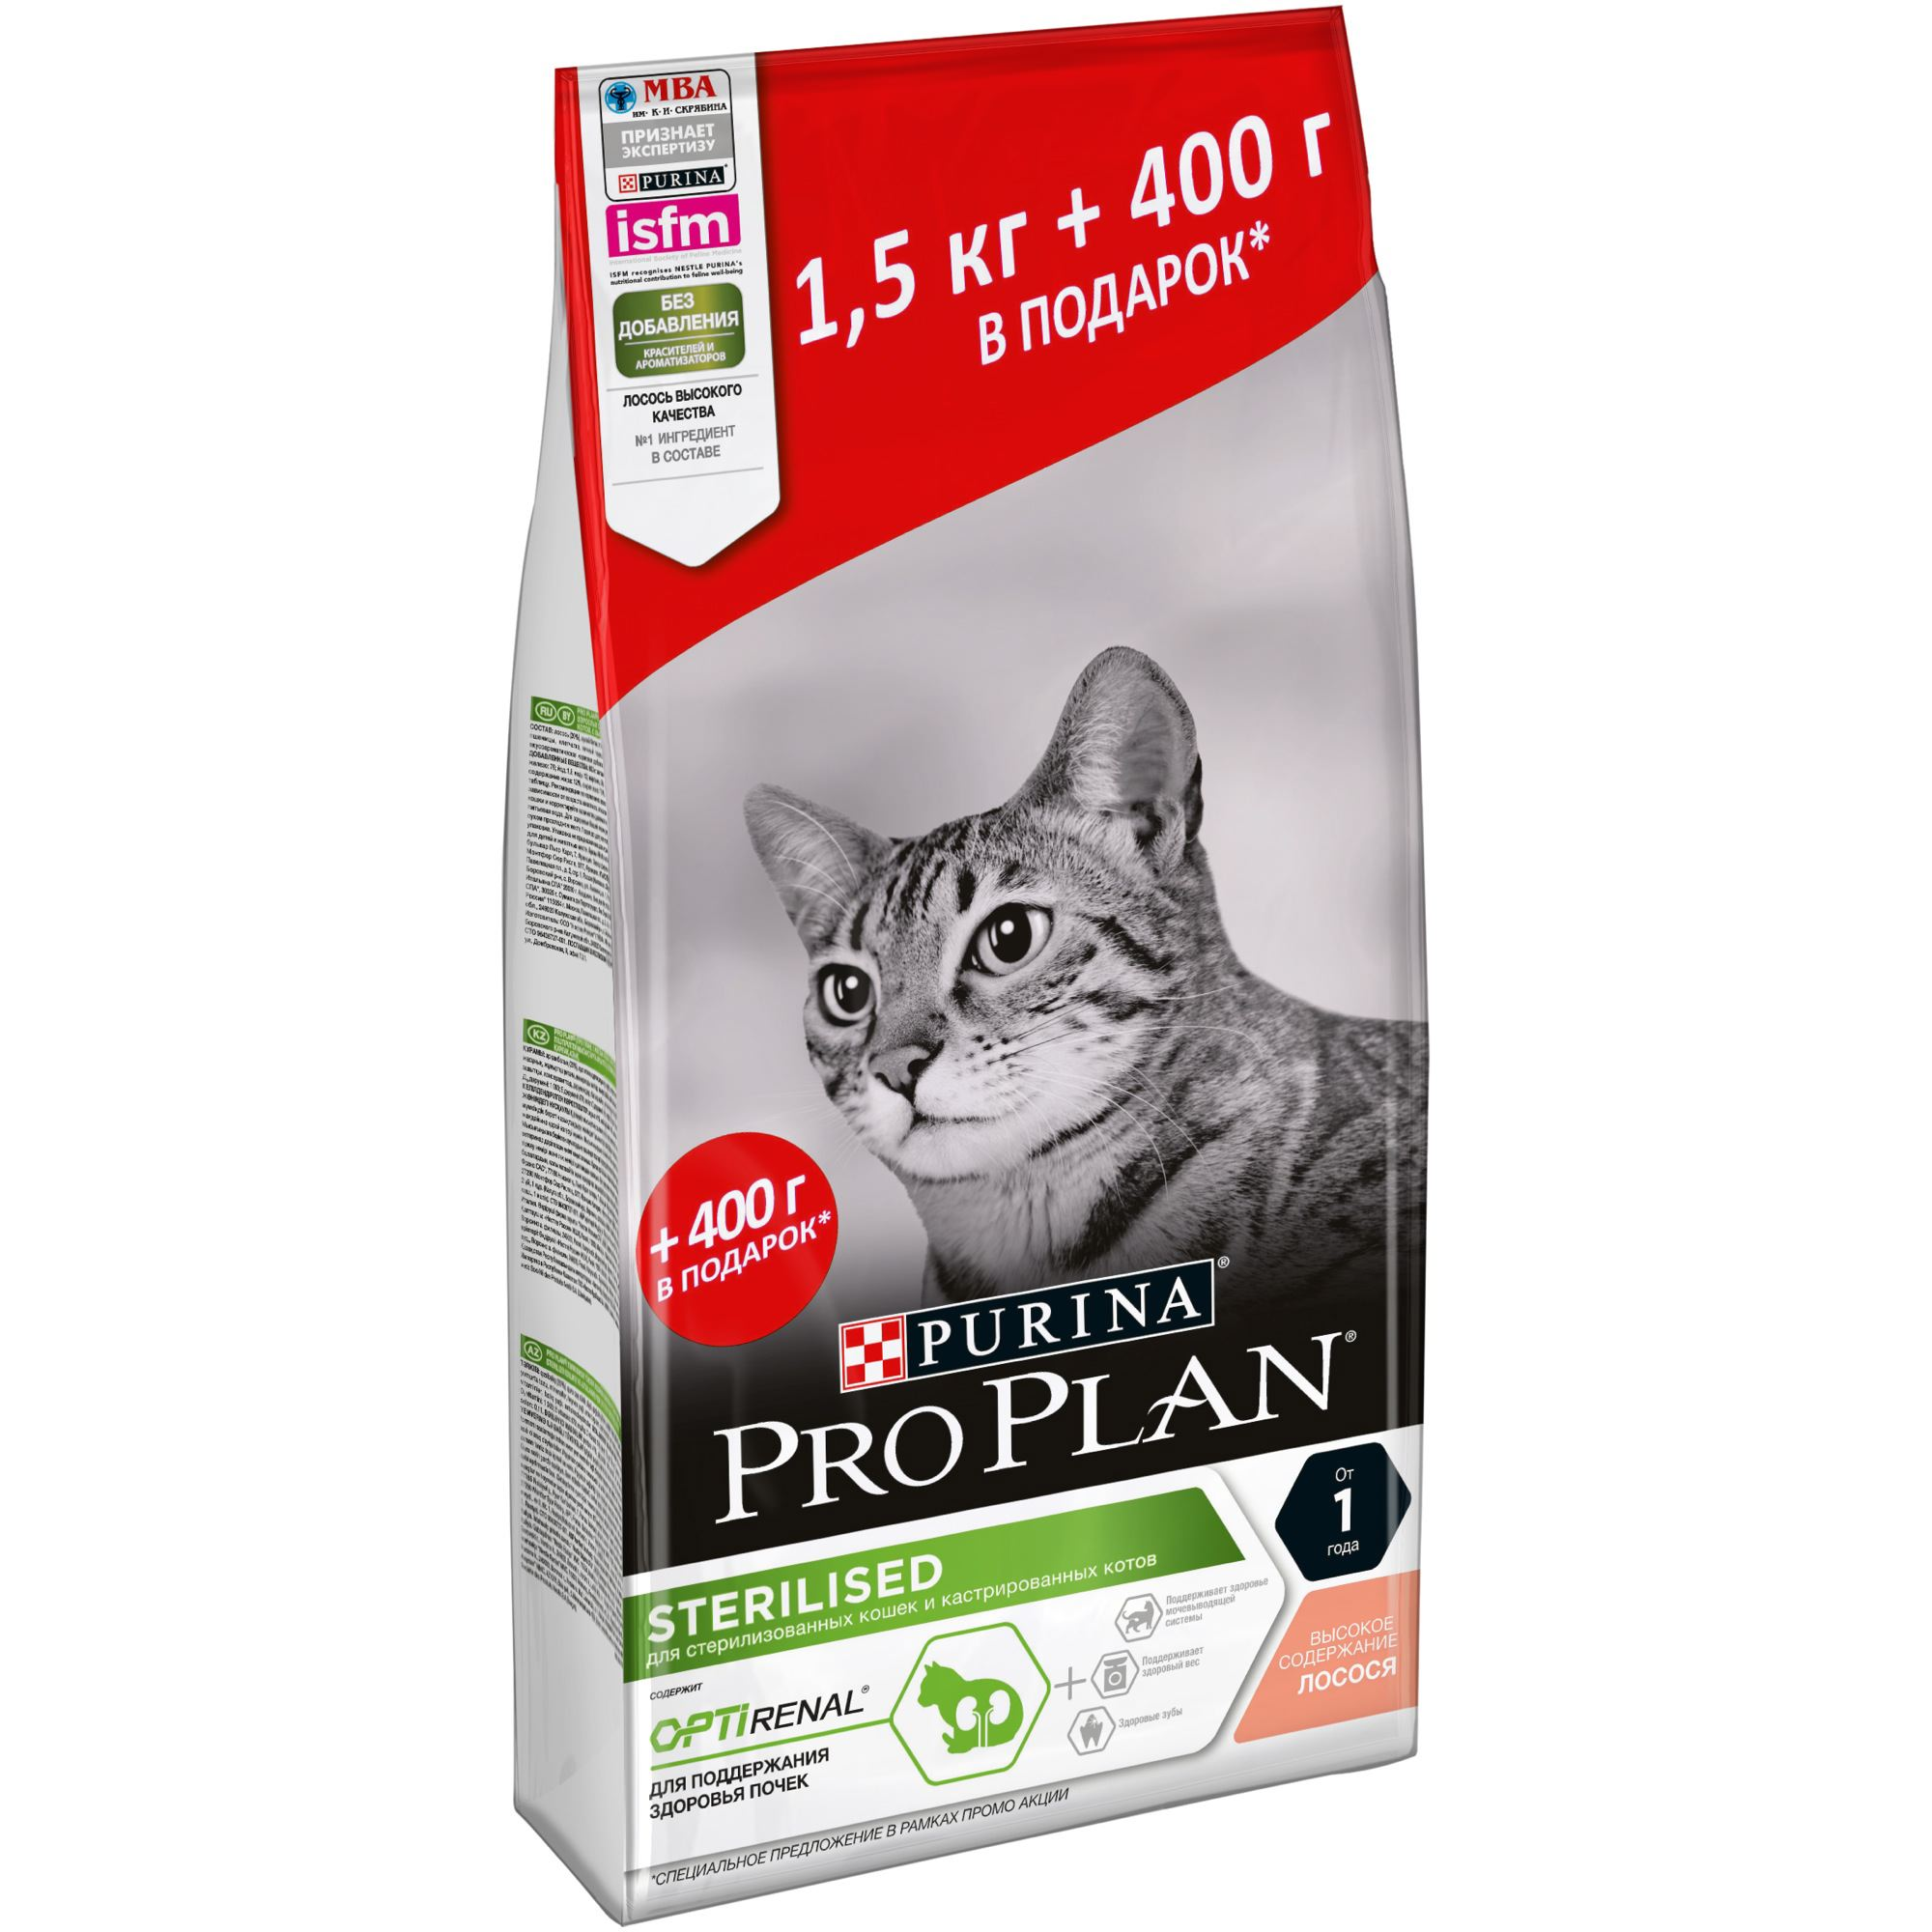 Promopak: Purina Pro Plan dry food for sterilized cats and neutered cats, with salmon, Package, 1.5 kg + 400 g dry food pro plan for sterilized cats and neutered cats with salmon 12 kg